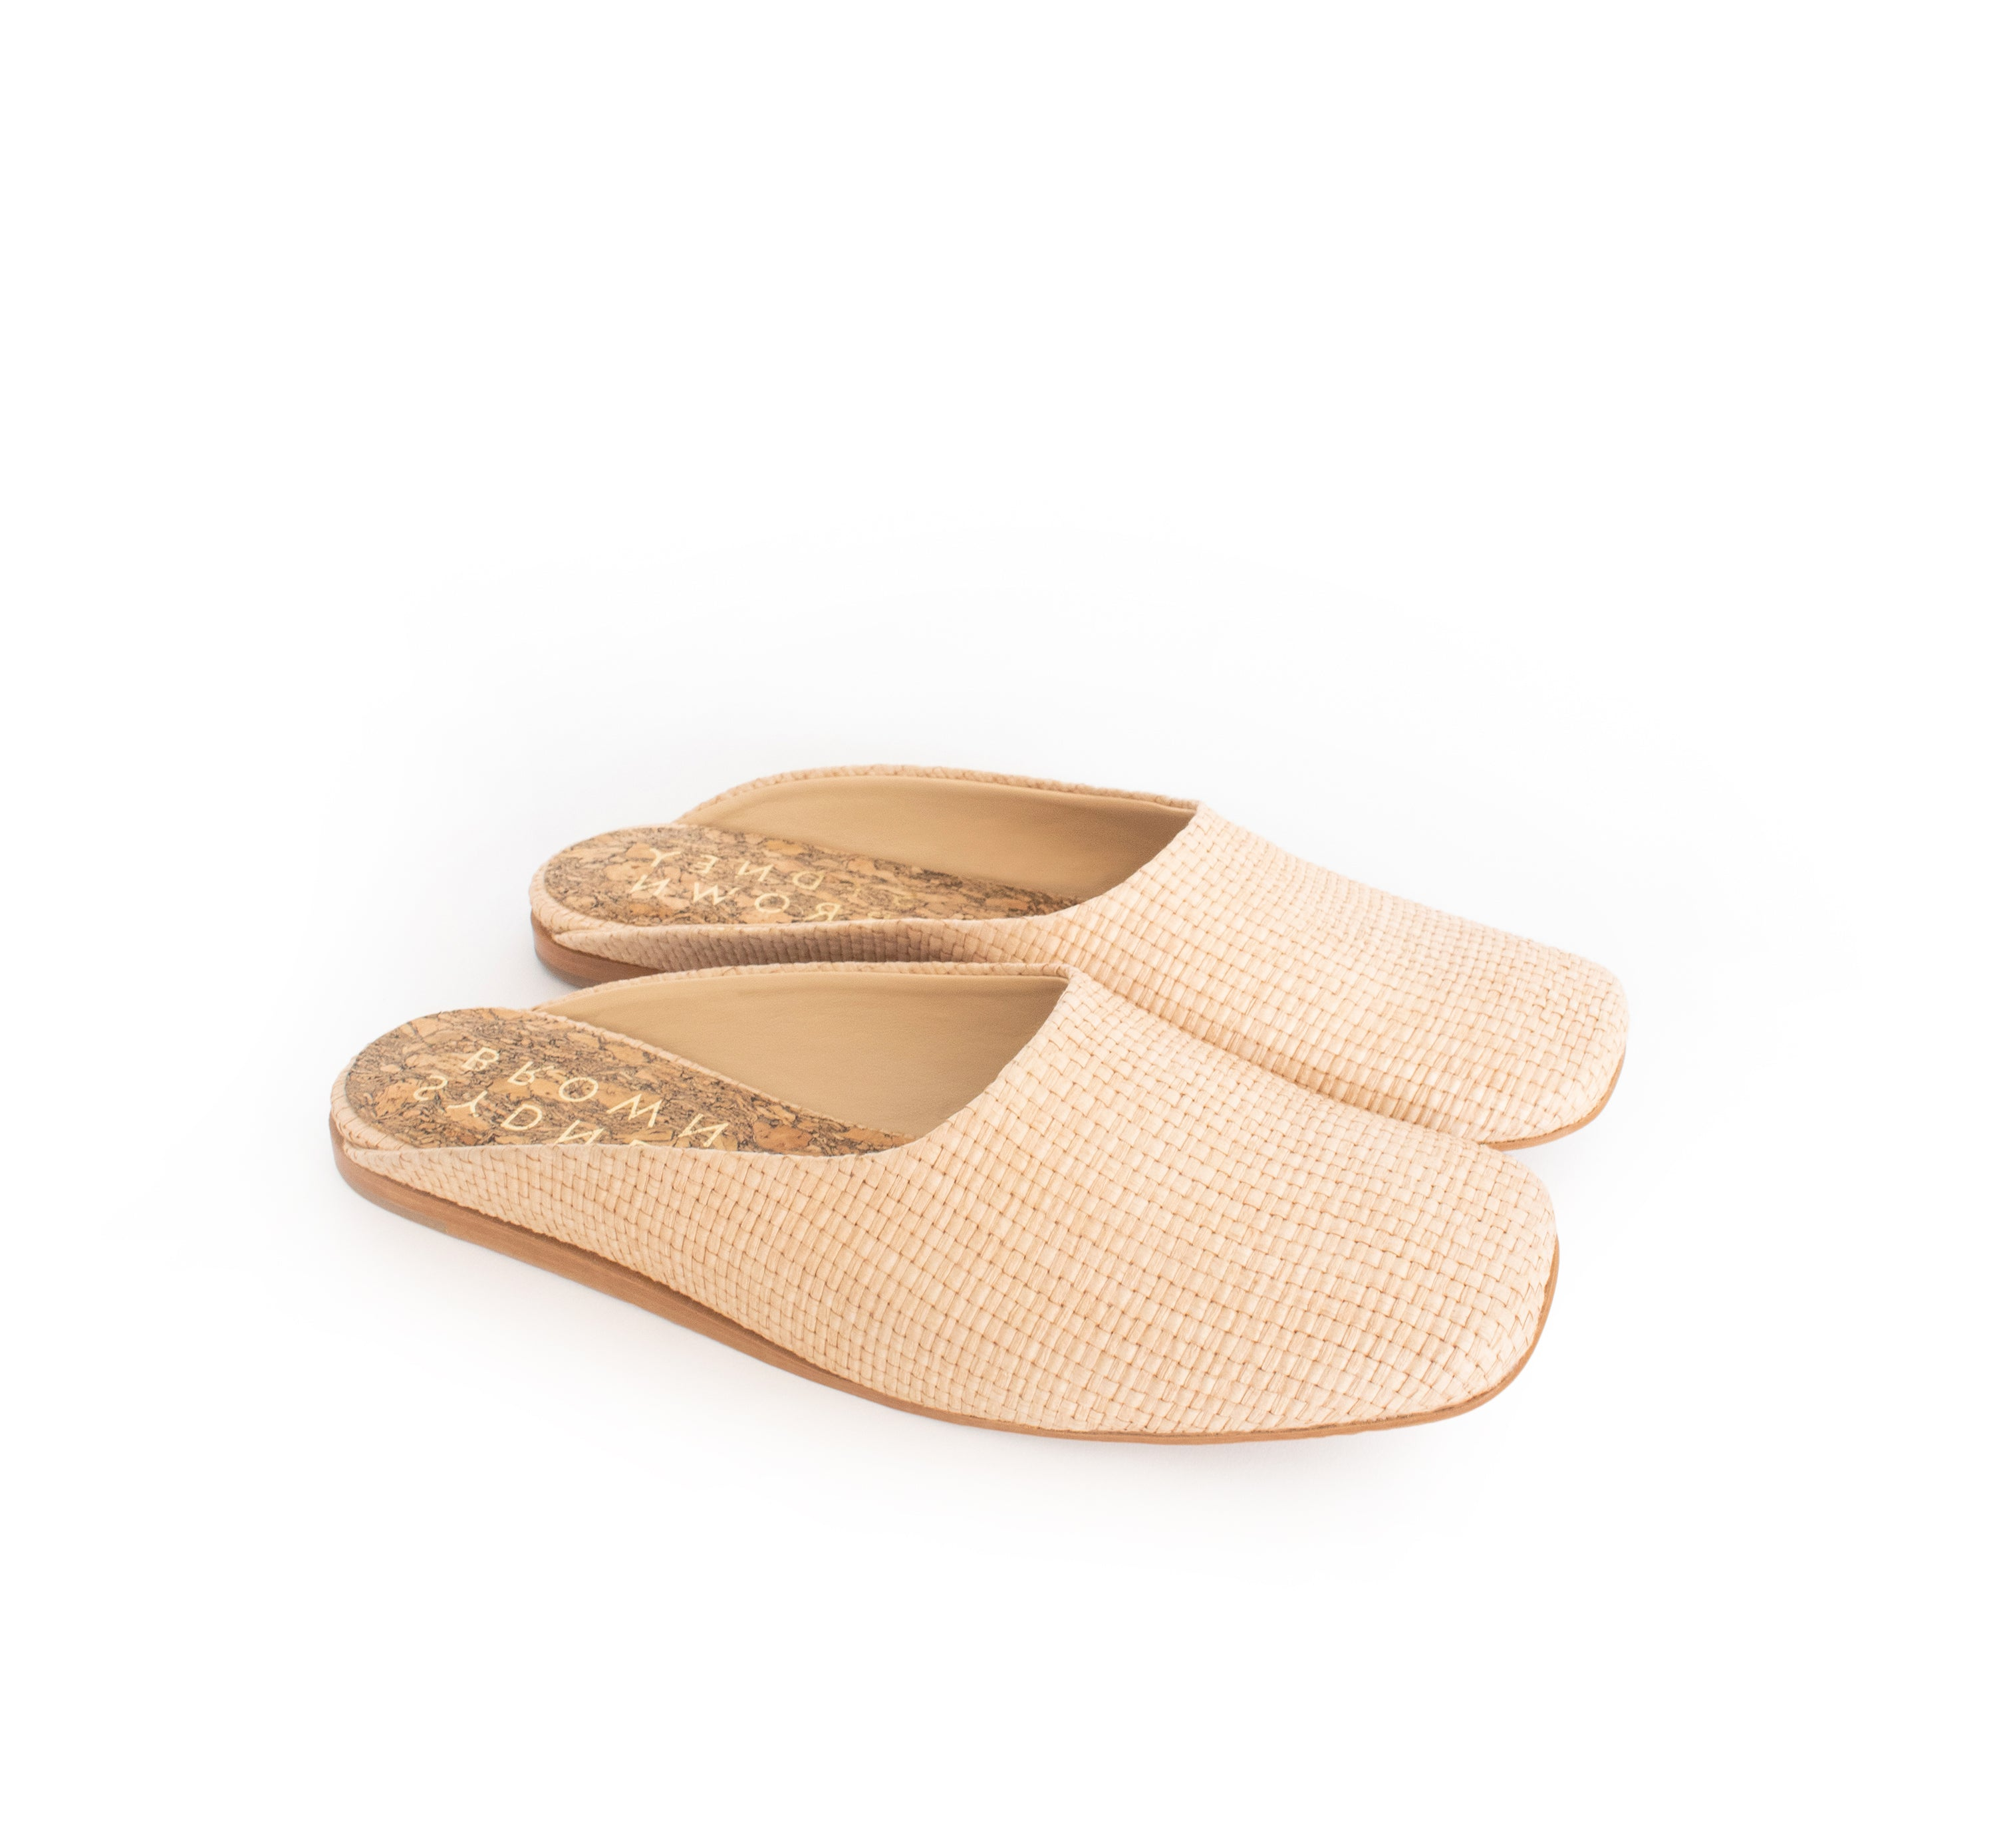 Raffia Square Toe Slide in Natural with natural sole. Luxury Vegan Shoes. Sydney Brown Flats for Spring Summer 2019. Sustainable, eco-friendly SS19, classic fashion.